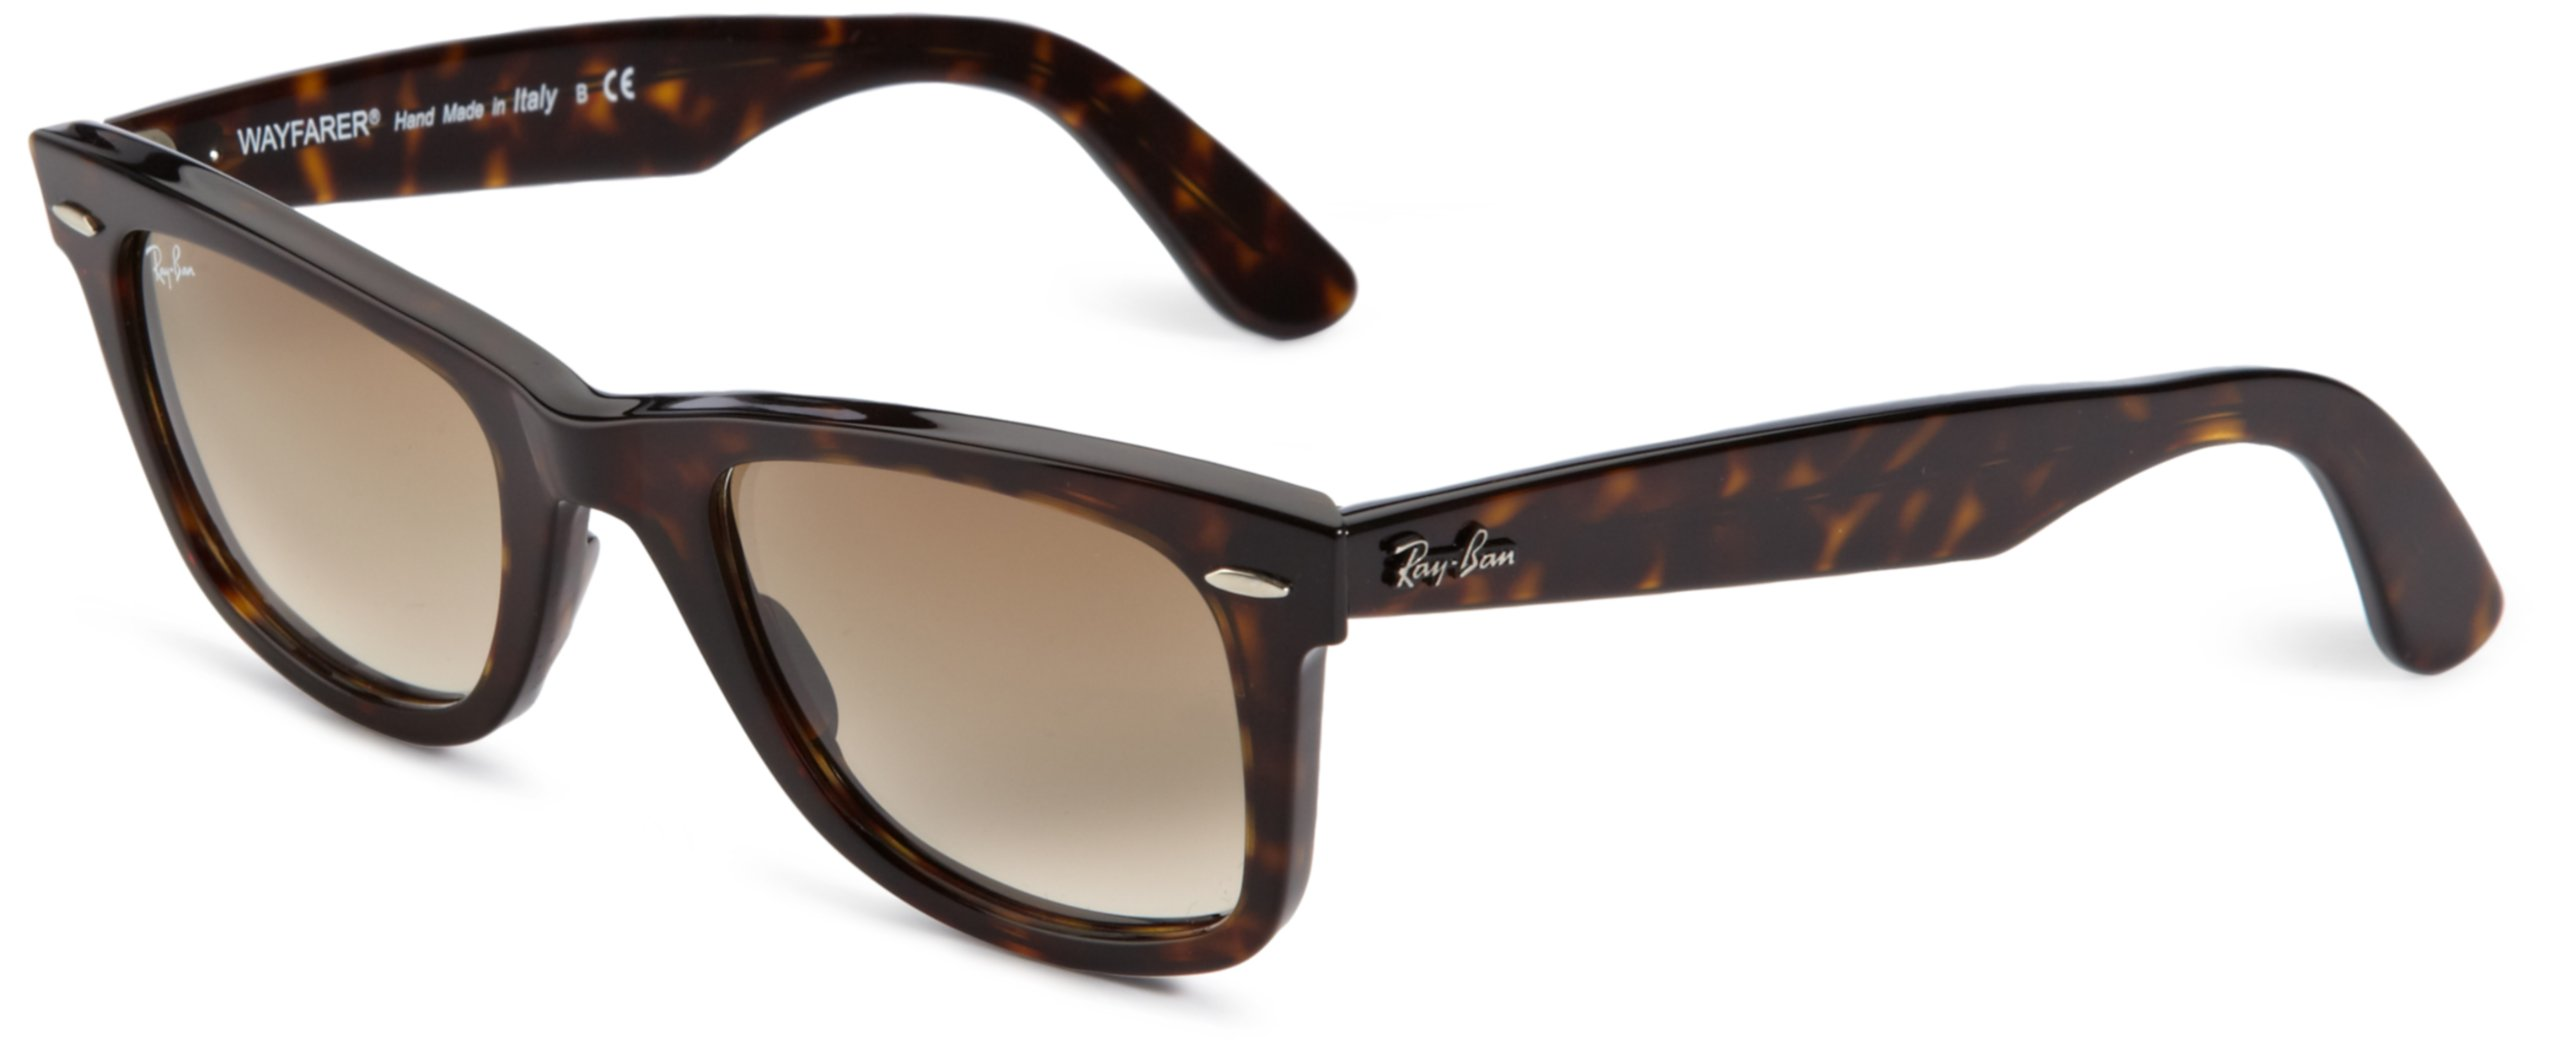 RayBan Sunglasses RB 2140 Sunglasses 902/57 tortoise 50mm